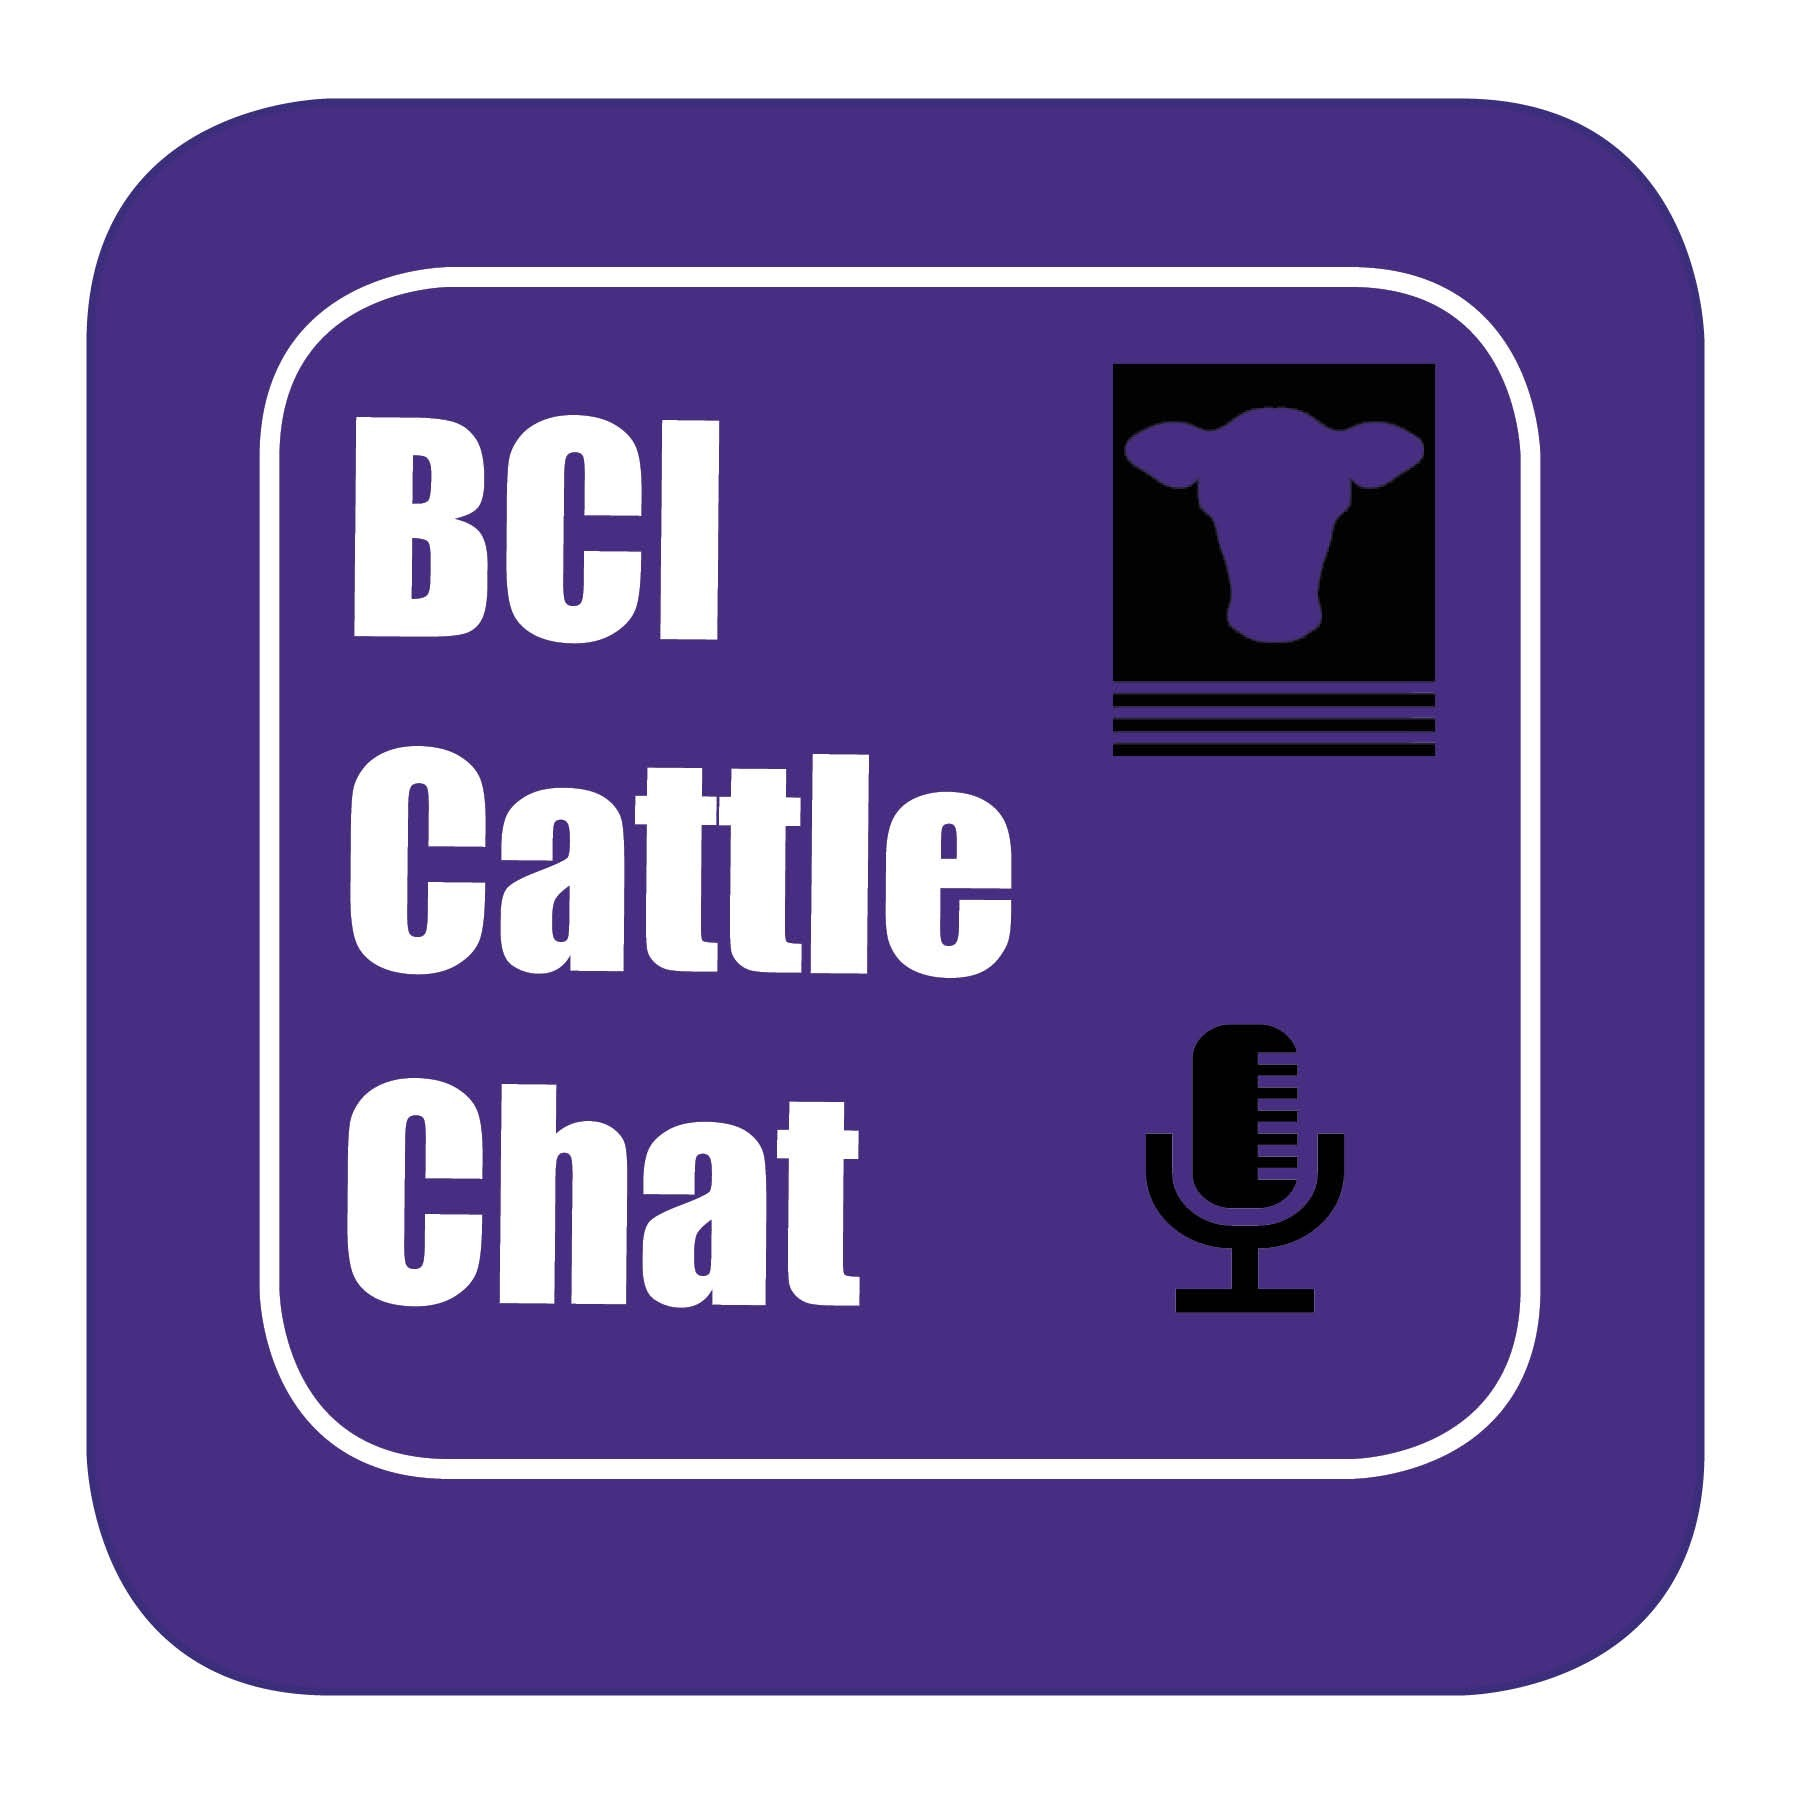 BCI Cattle Chat - Episode 55